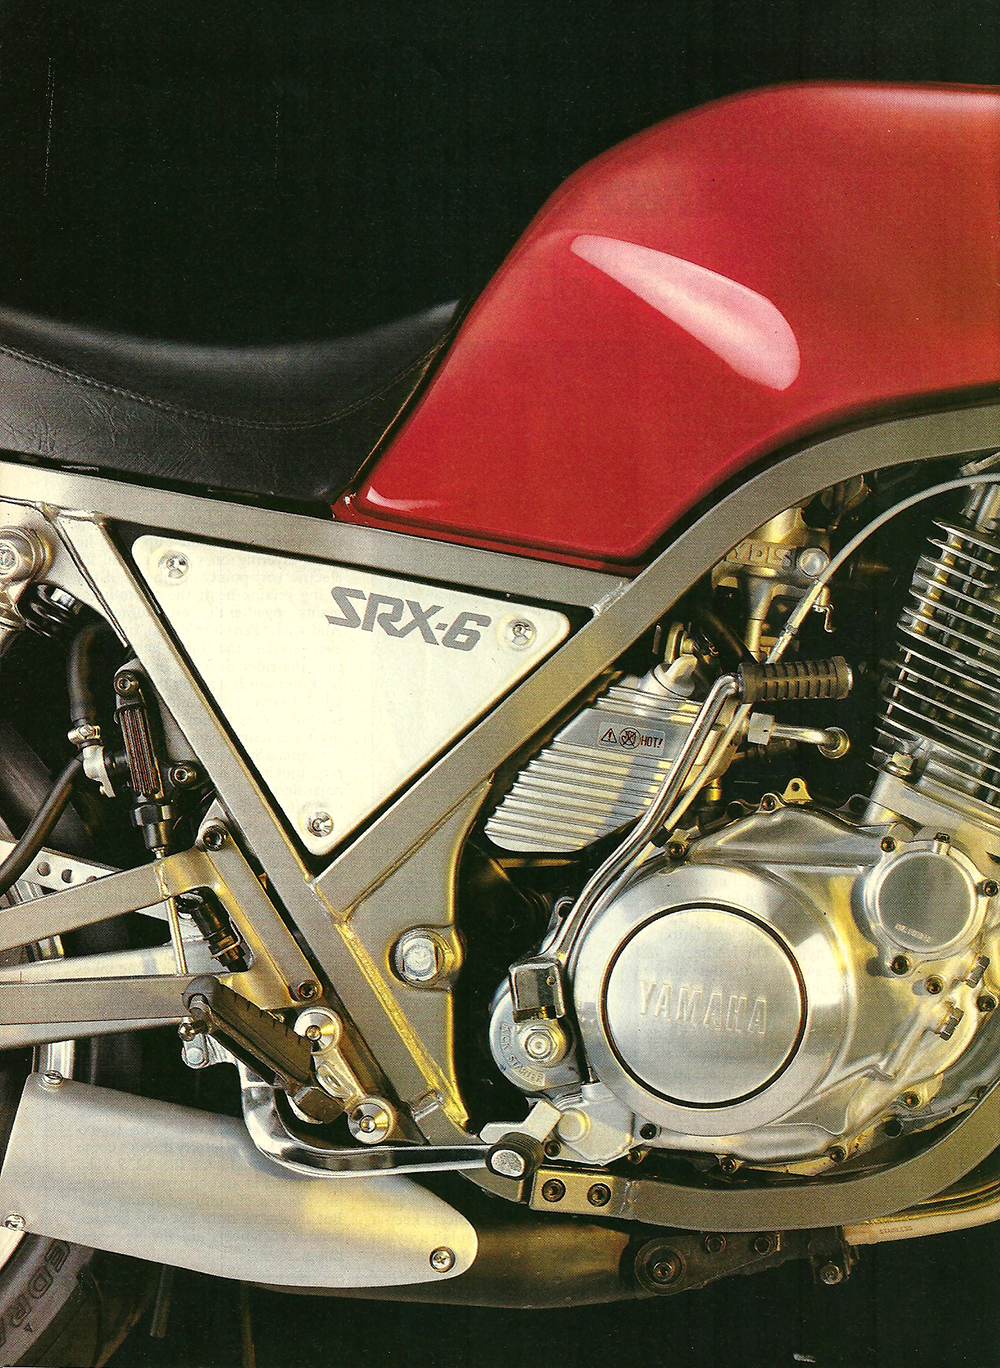 1986 Yamaha SRX600 road test 01.jpg